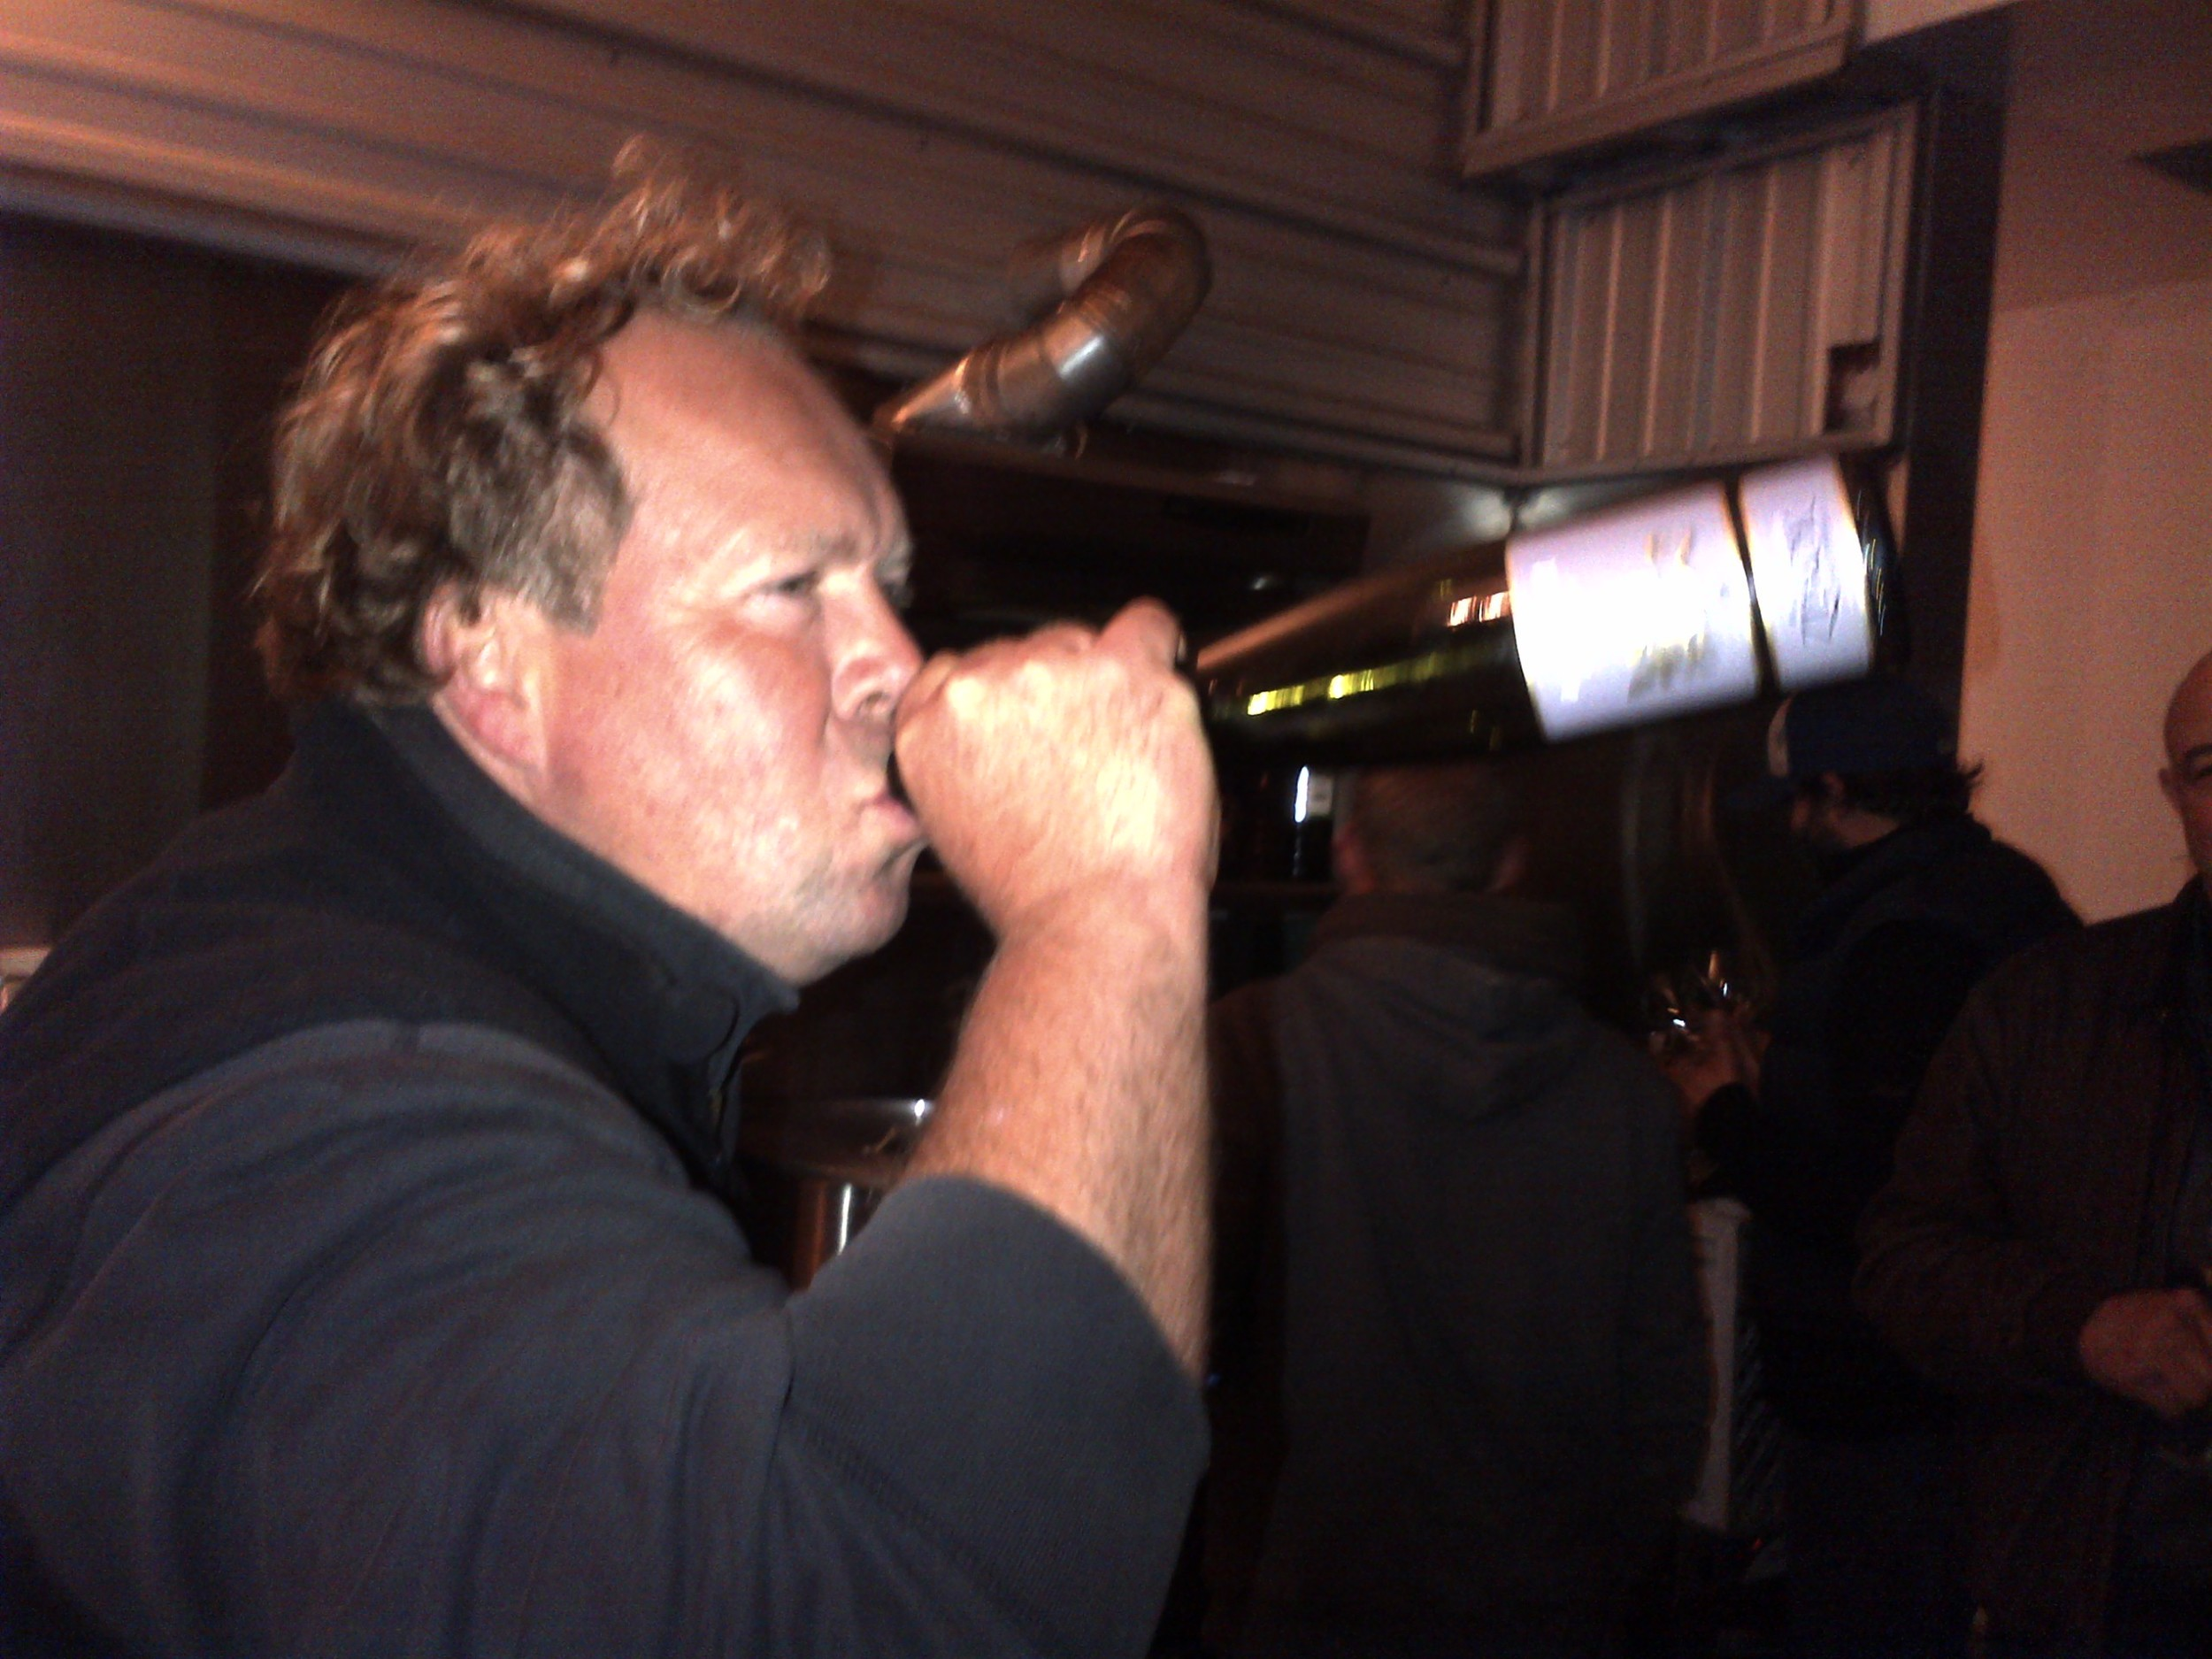 The last photo taken on my phone, sometime late at night. Norm and some Grand Cru Gewurztraminer.